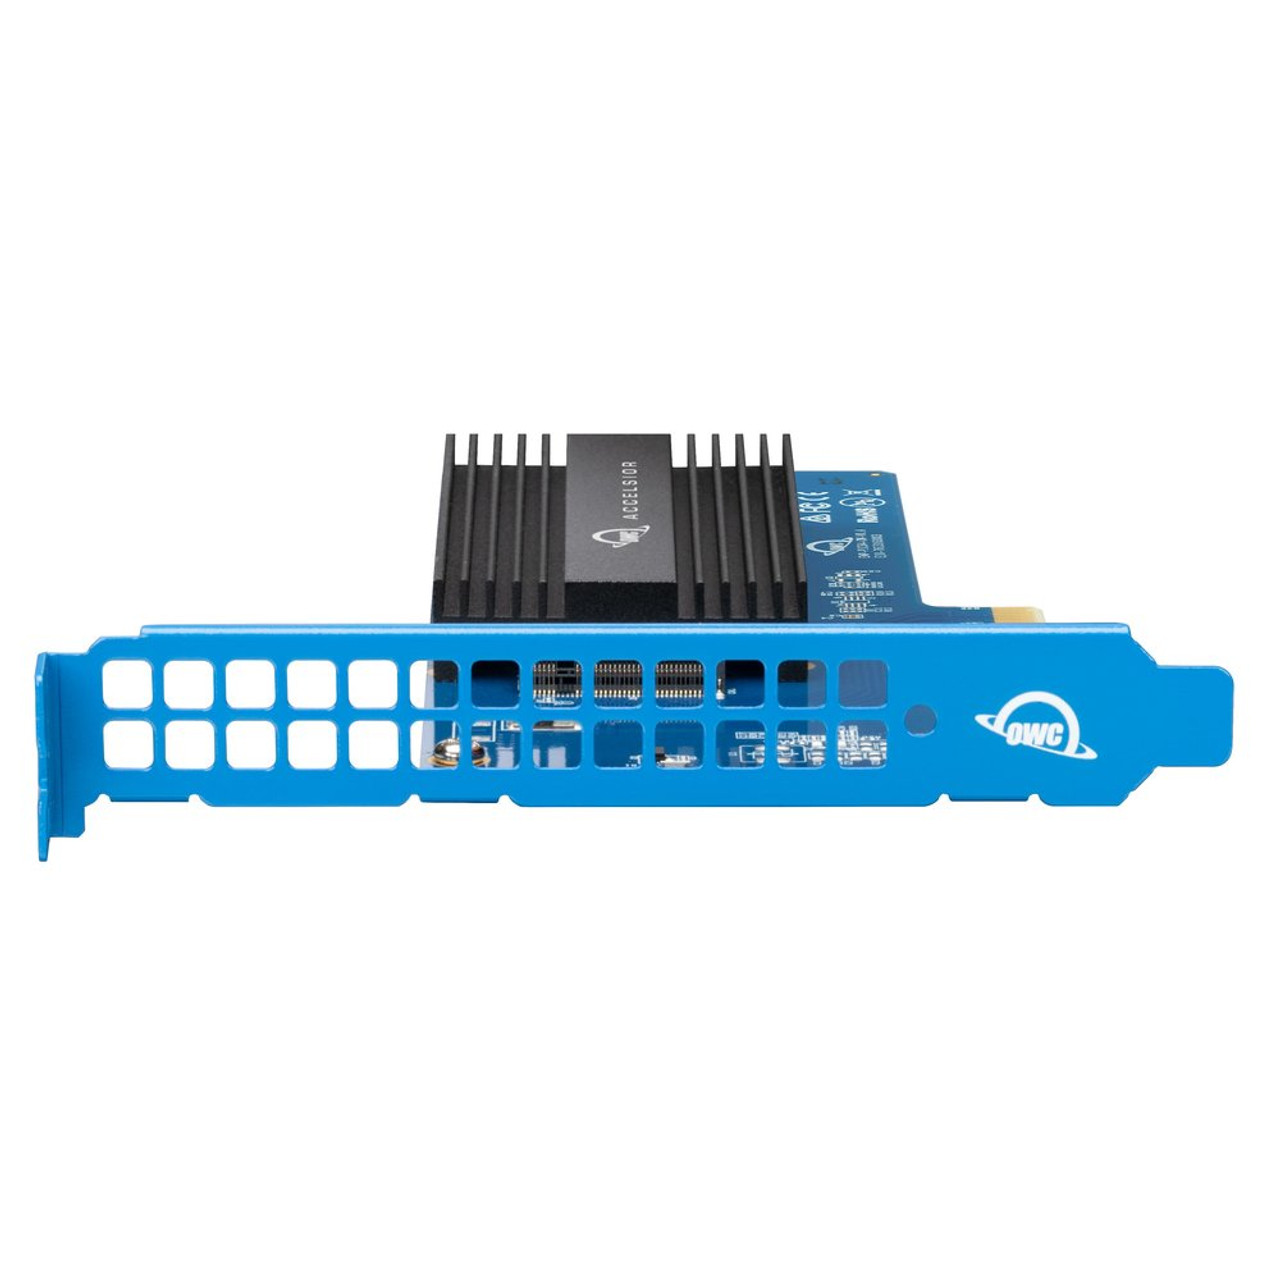 OWC OWCSACL1M adapter card